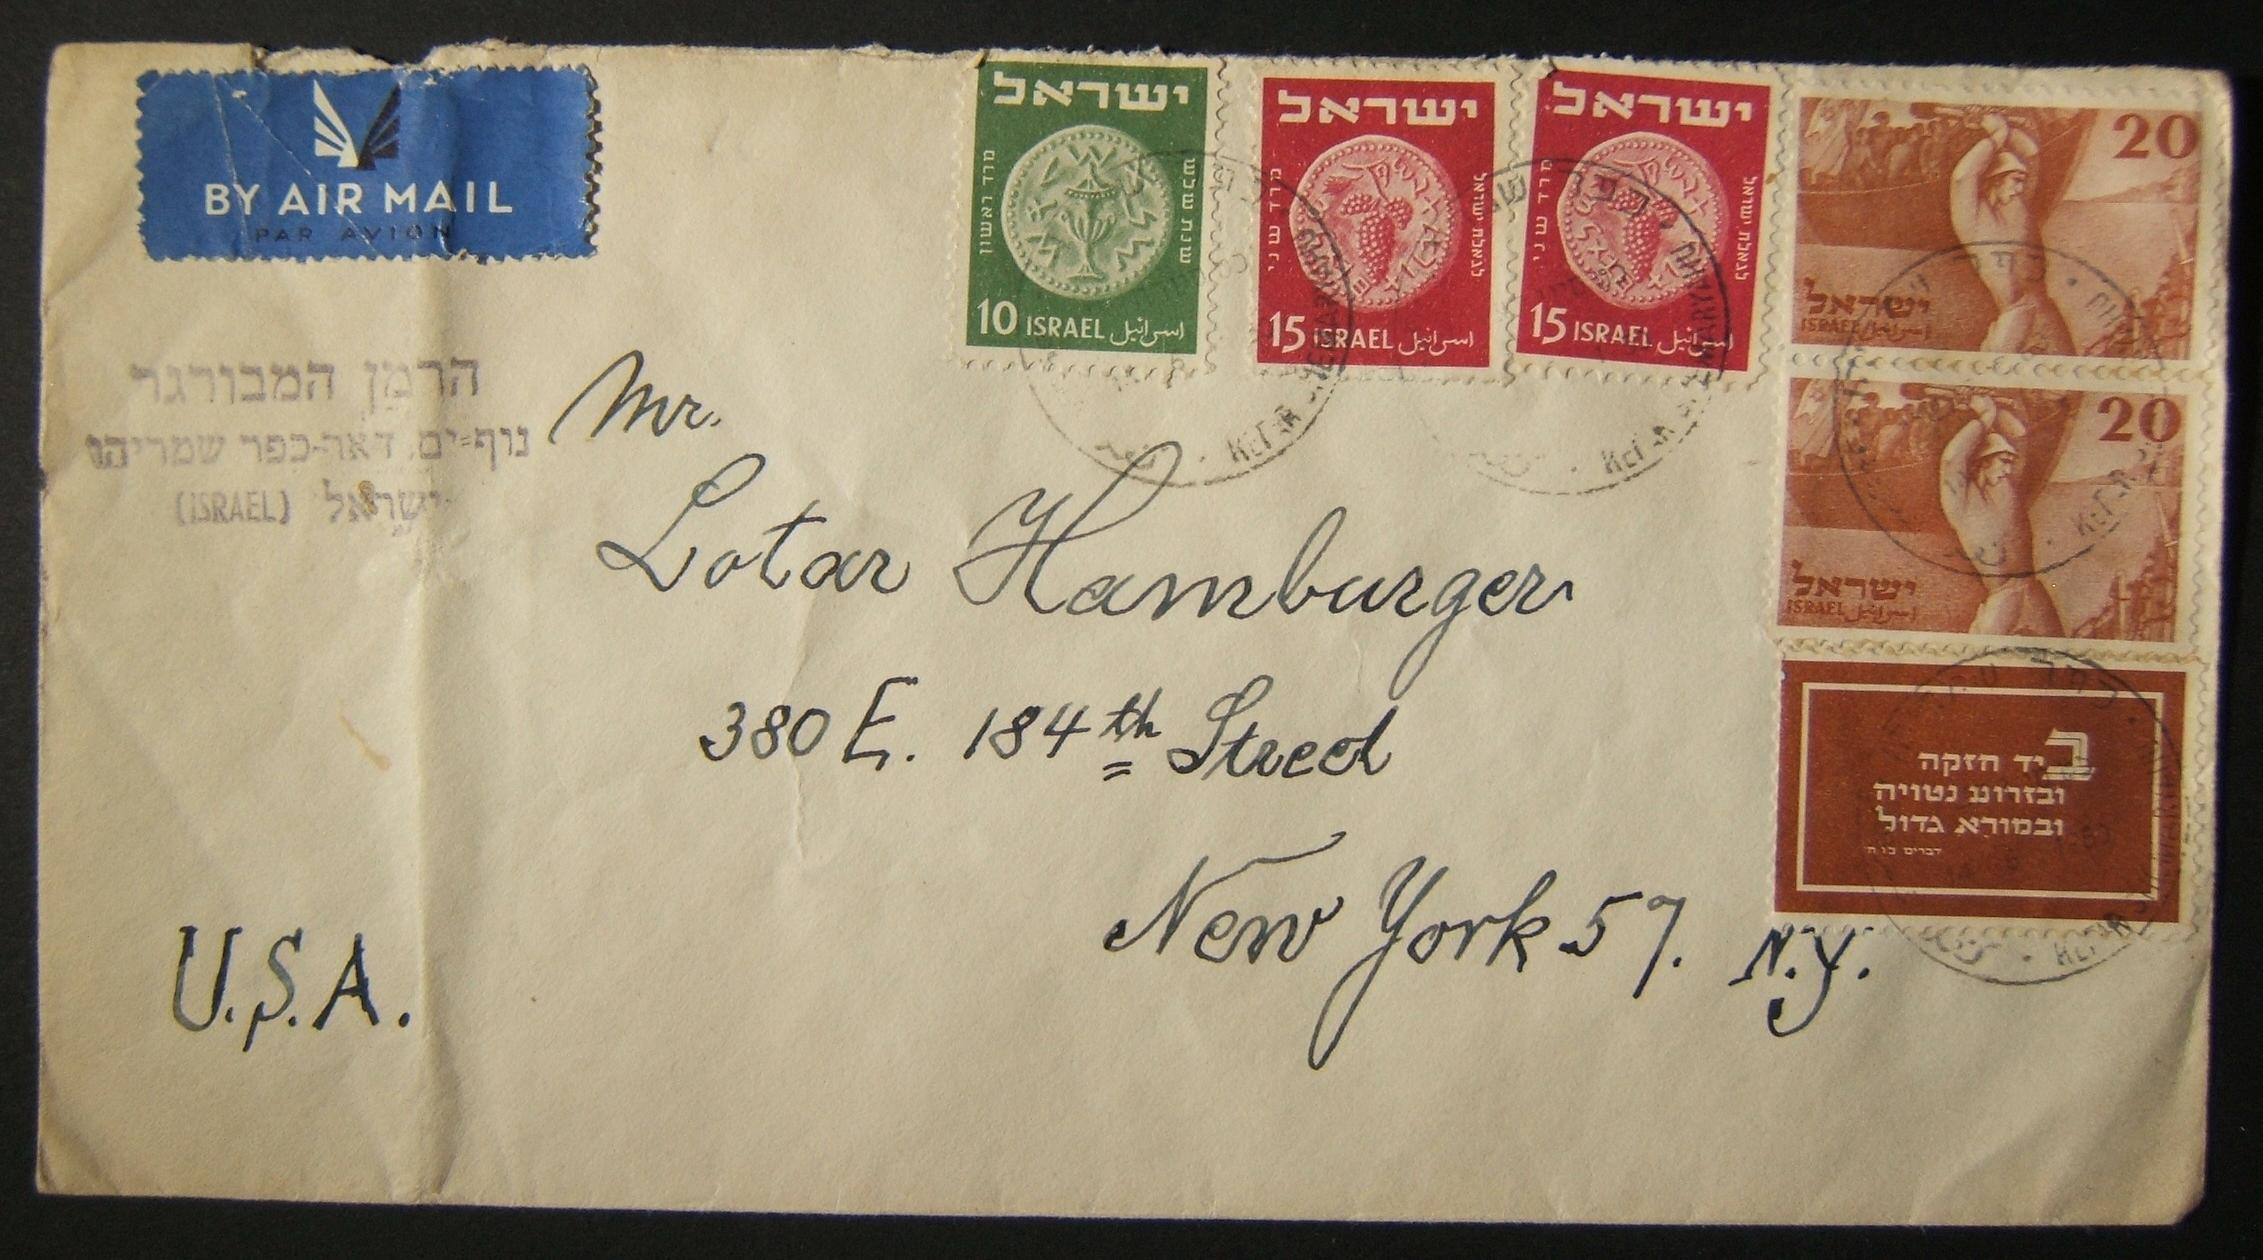 1950 Independence / PO's, rates & routes: 14-6-1950 personal stationary airmail cover ex KEFAR SHEMARYAHU to NYC franked 80pr at the FA-2a period rate to US using mix detached half